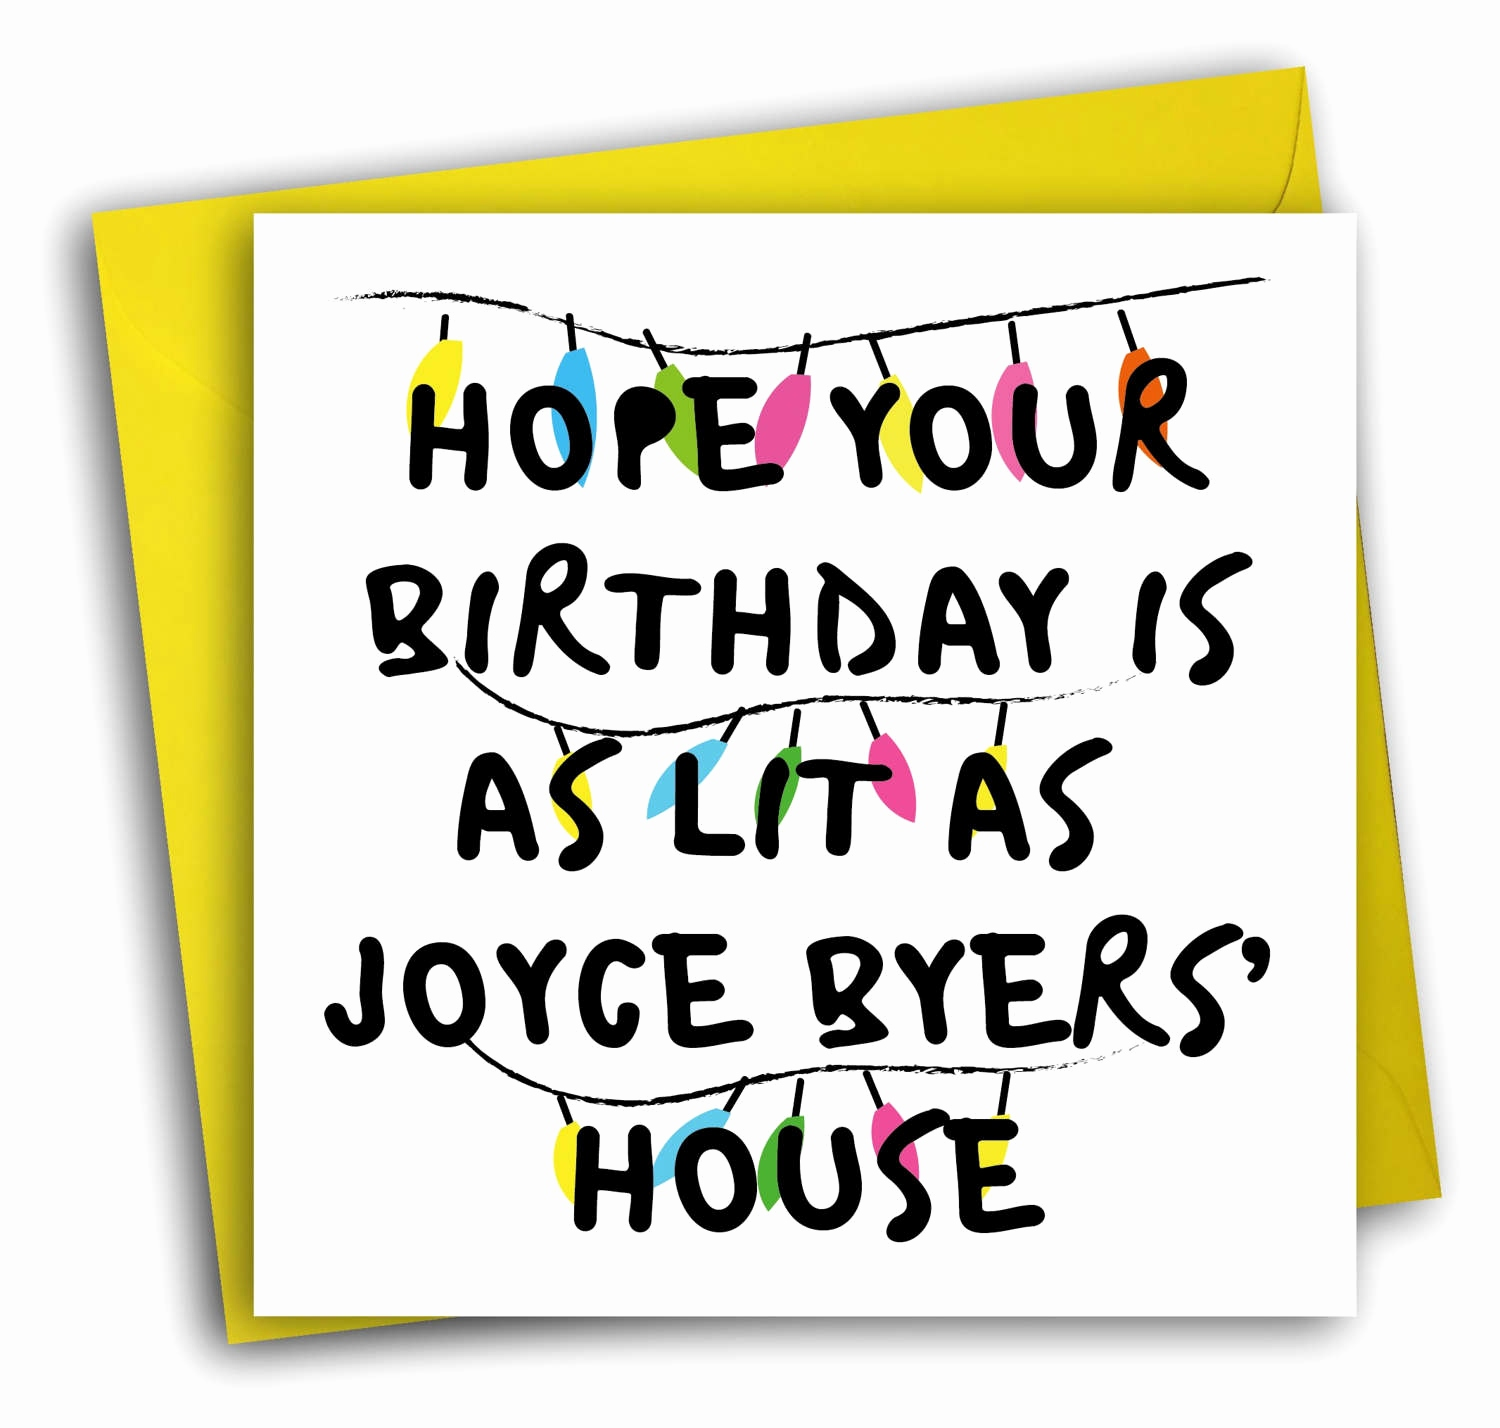 send birthday card to cell phone ; send-birthday-card-to-cell-phone-new-stranger-things-card-funny-birthday-card-joyce-byers-of-send-birthday-card-to-cell-phone